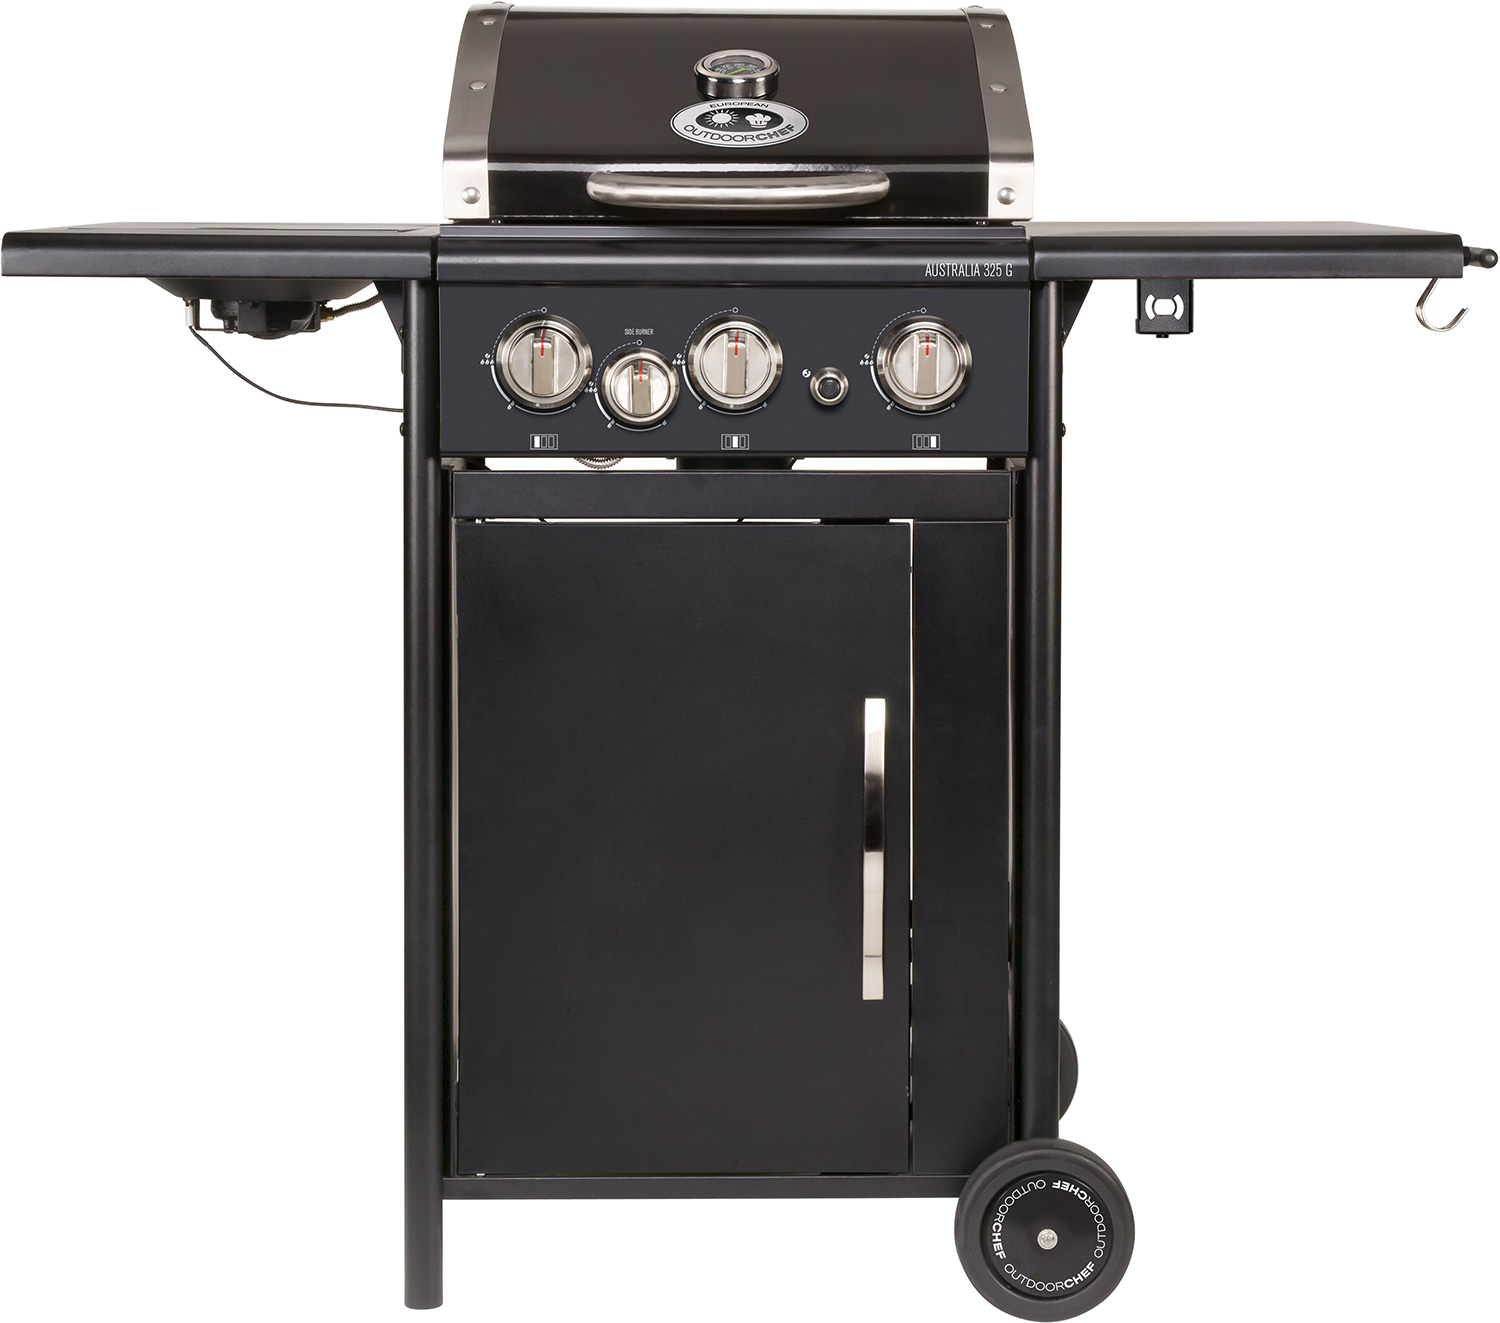 outdoorchef gasgrill australia 325 g kaufen grillstation gasgrillstation. Black Bedroom Furniture Sets. Home Design Ideas